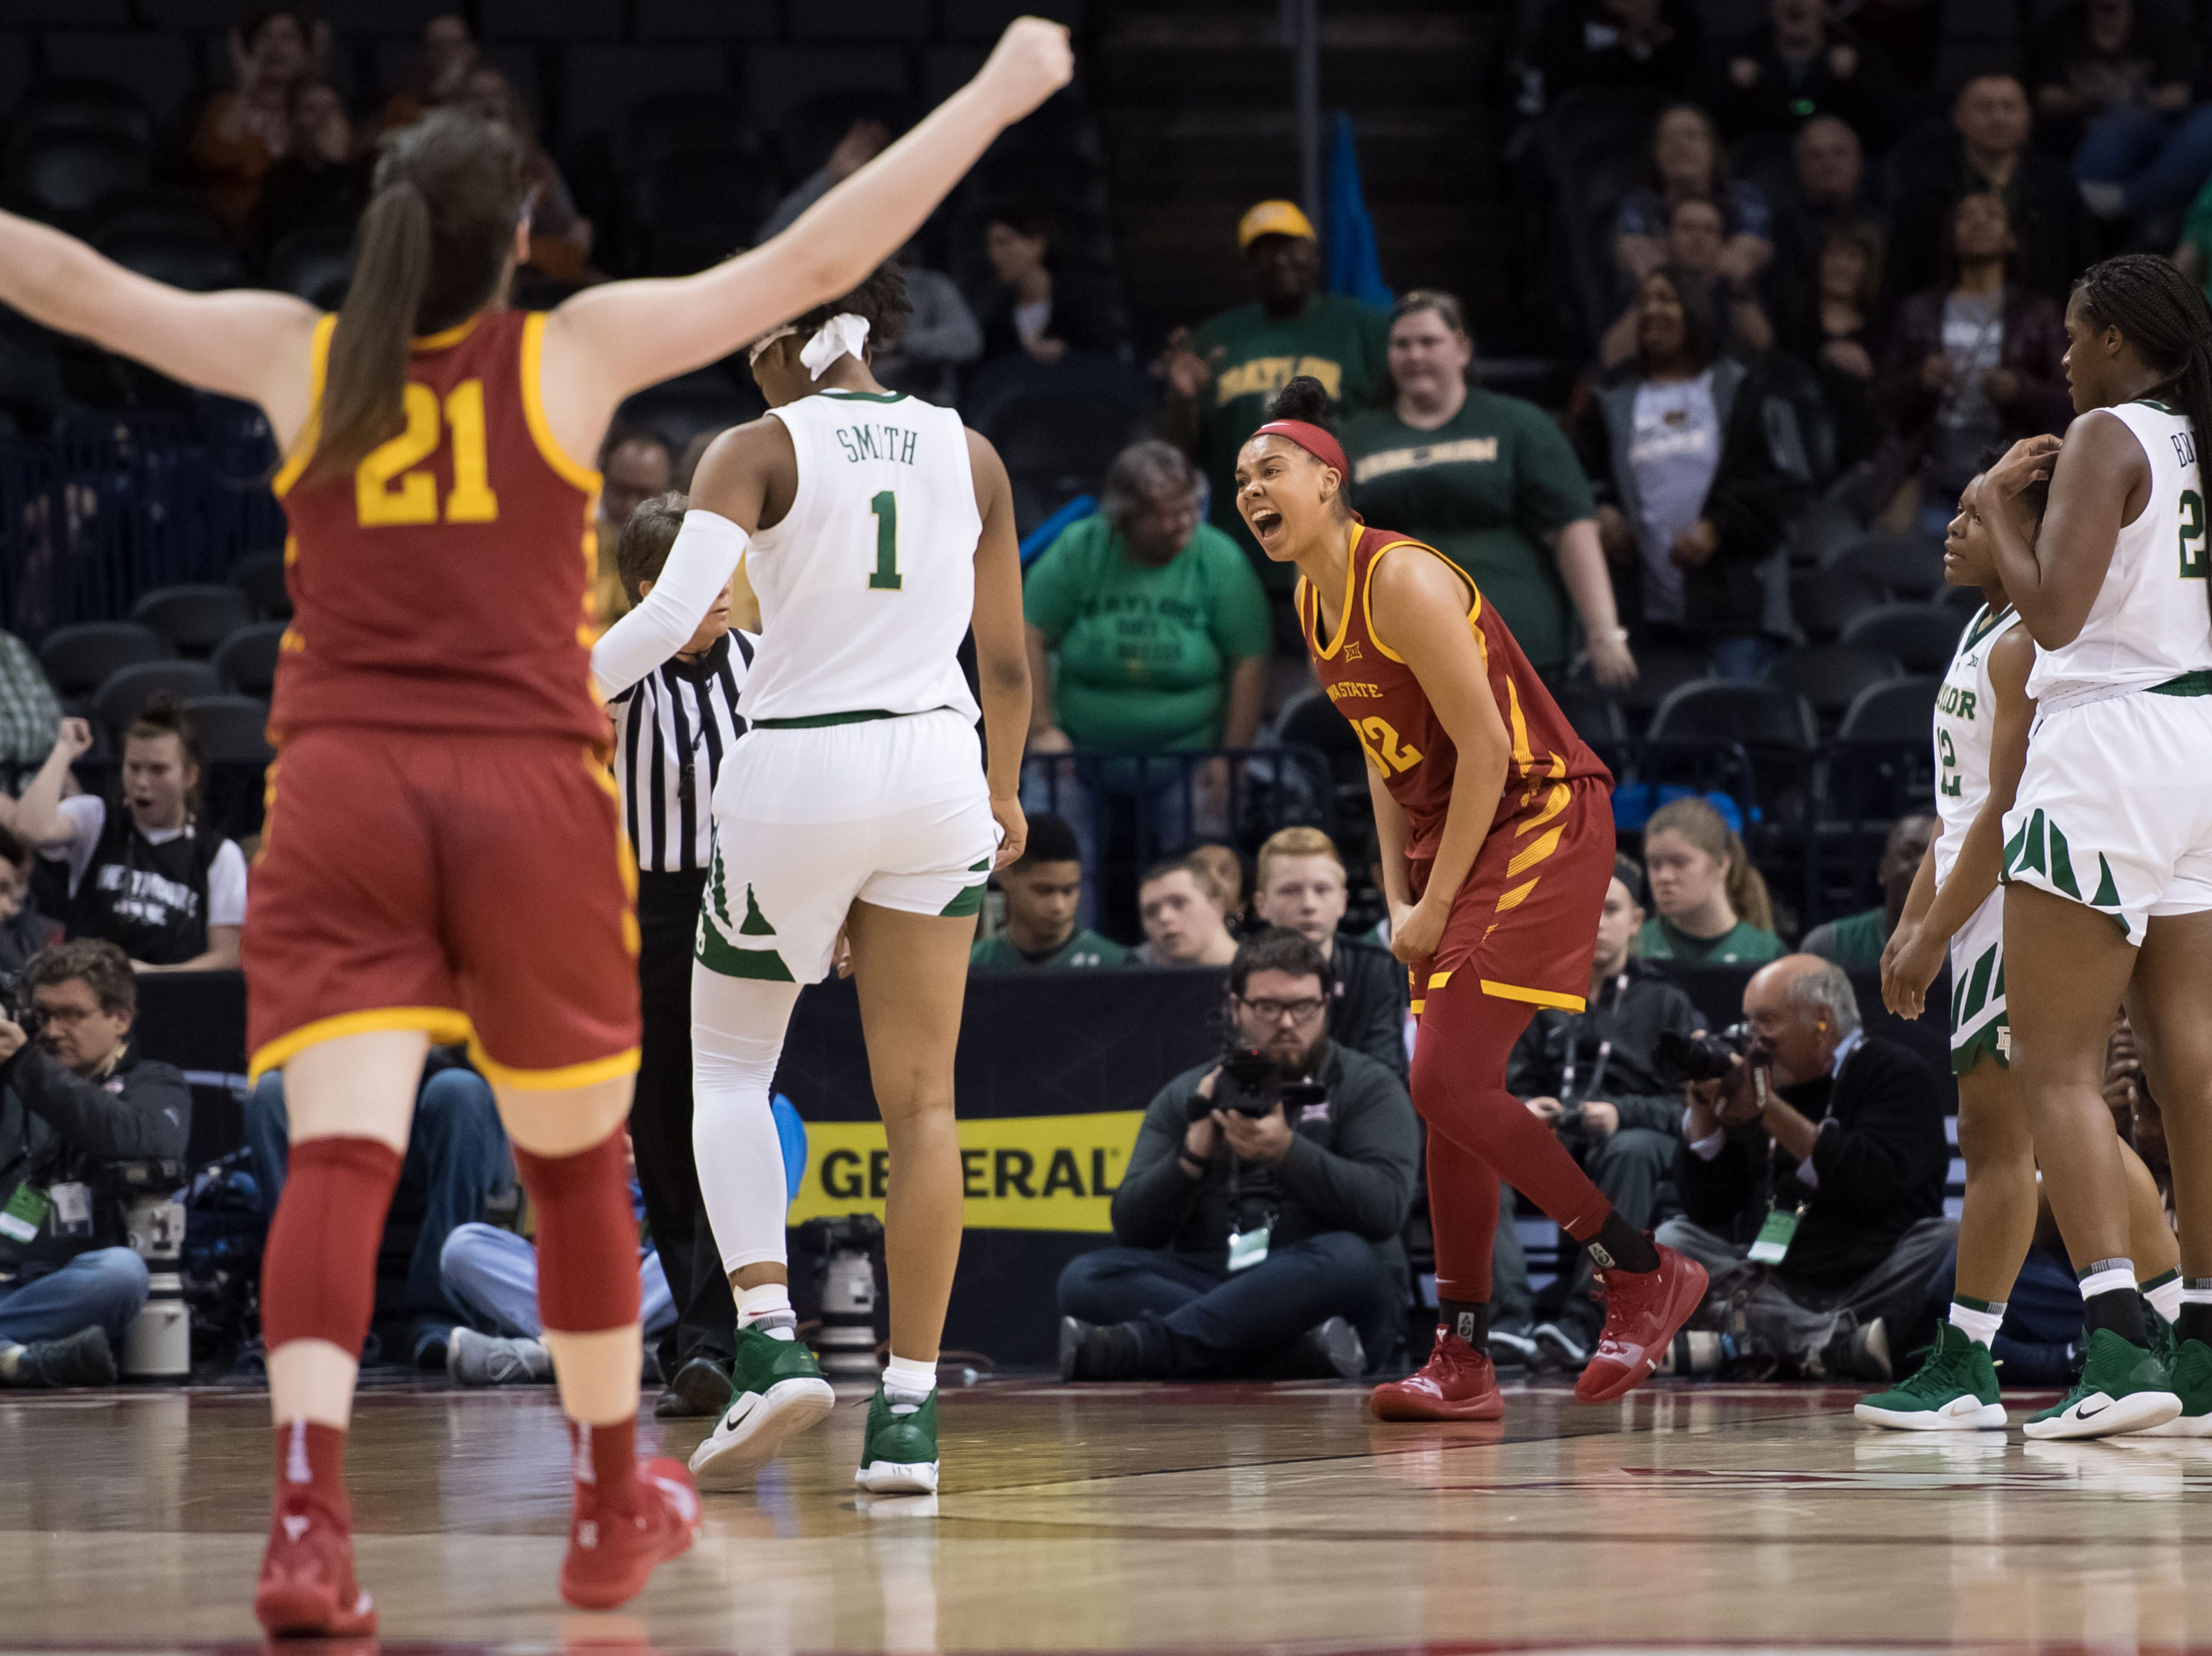 Iowa State Cyclones forward Meredith Burkhall (32) reacts after scoring and drawing a foul against the Baylor Lady Bears during the second quarter in the women's Big 12 Conference Tournament at Chesapeake Energy Arena.